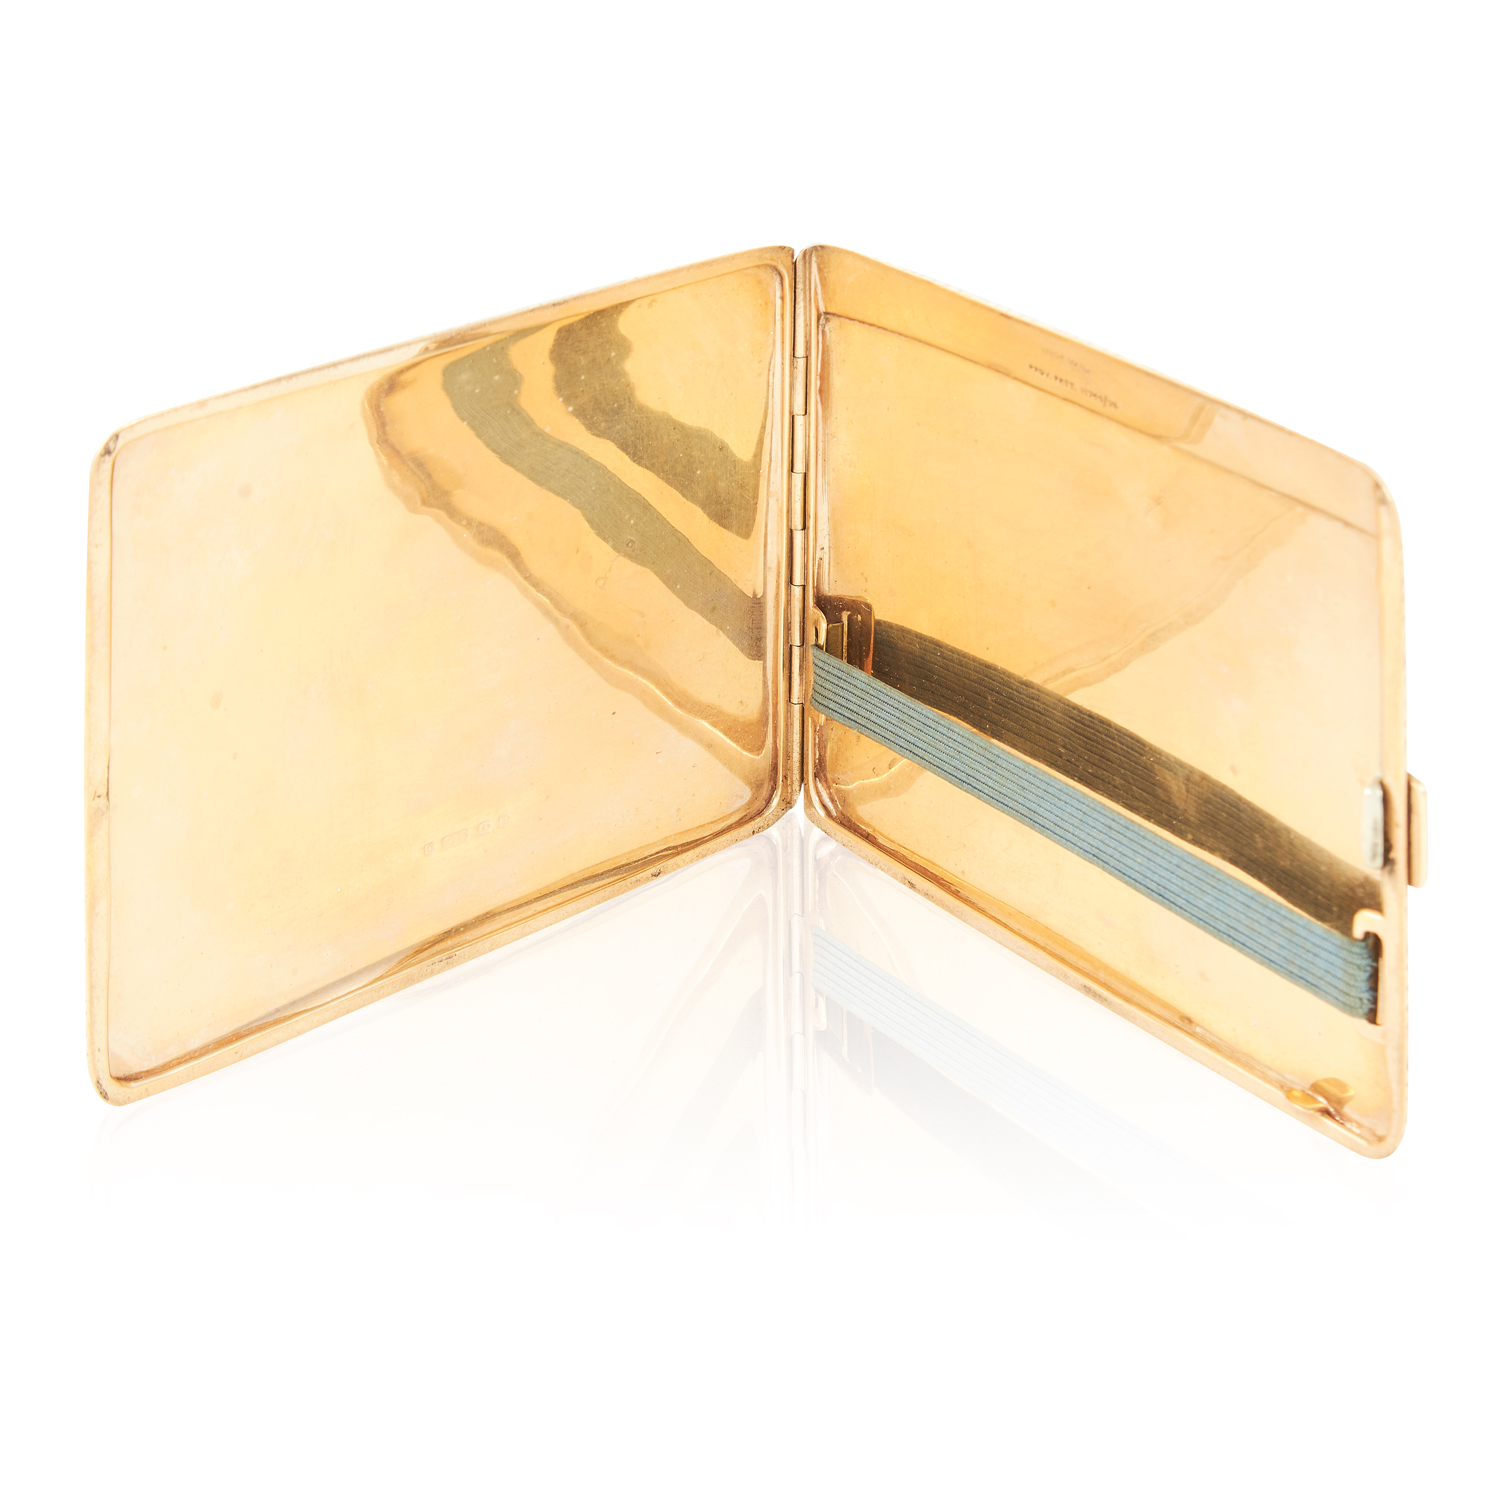 Los 74 - AN ANTIQUE GOLD CIGARETTE CASE, 1935 in 9ct yellow gold, the rounded rectangular body with engine